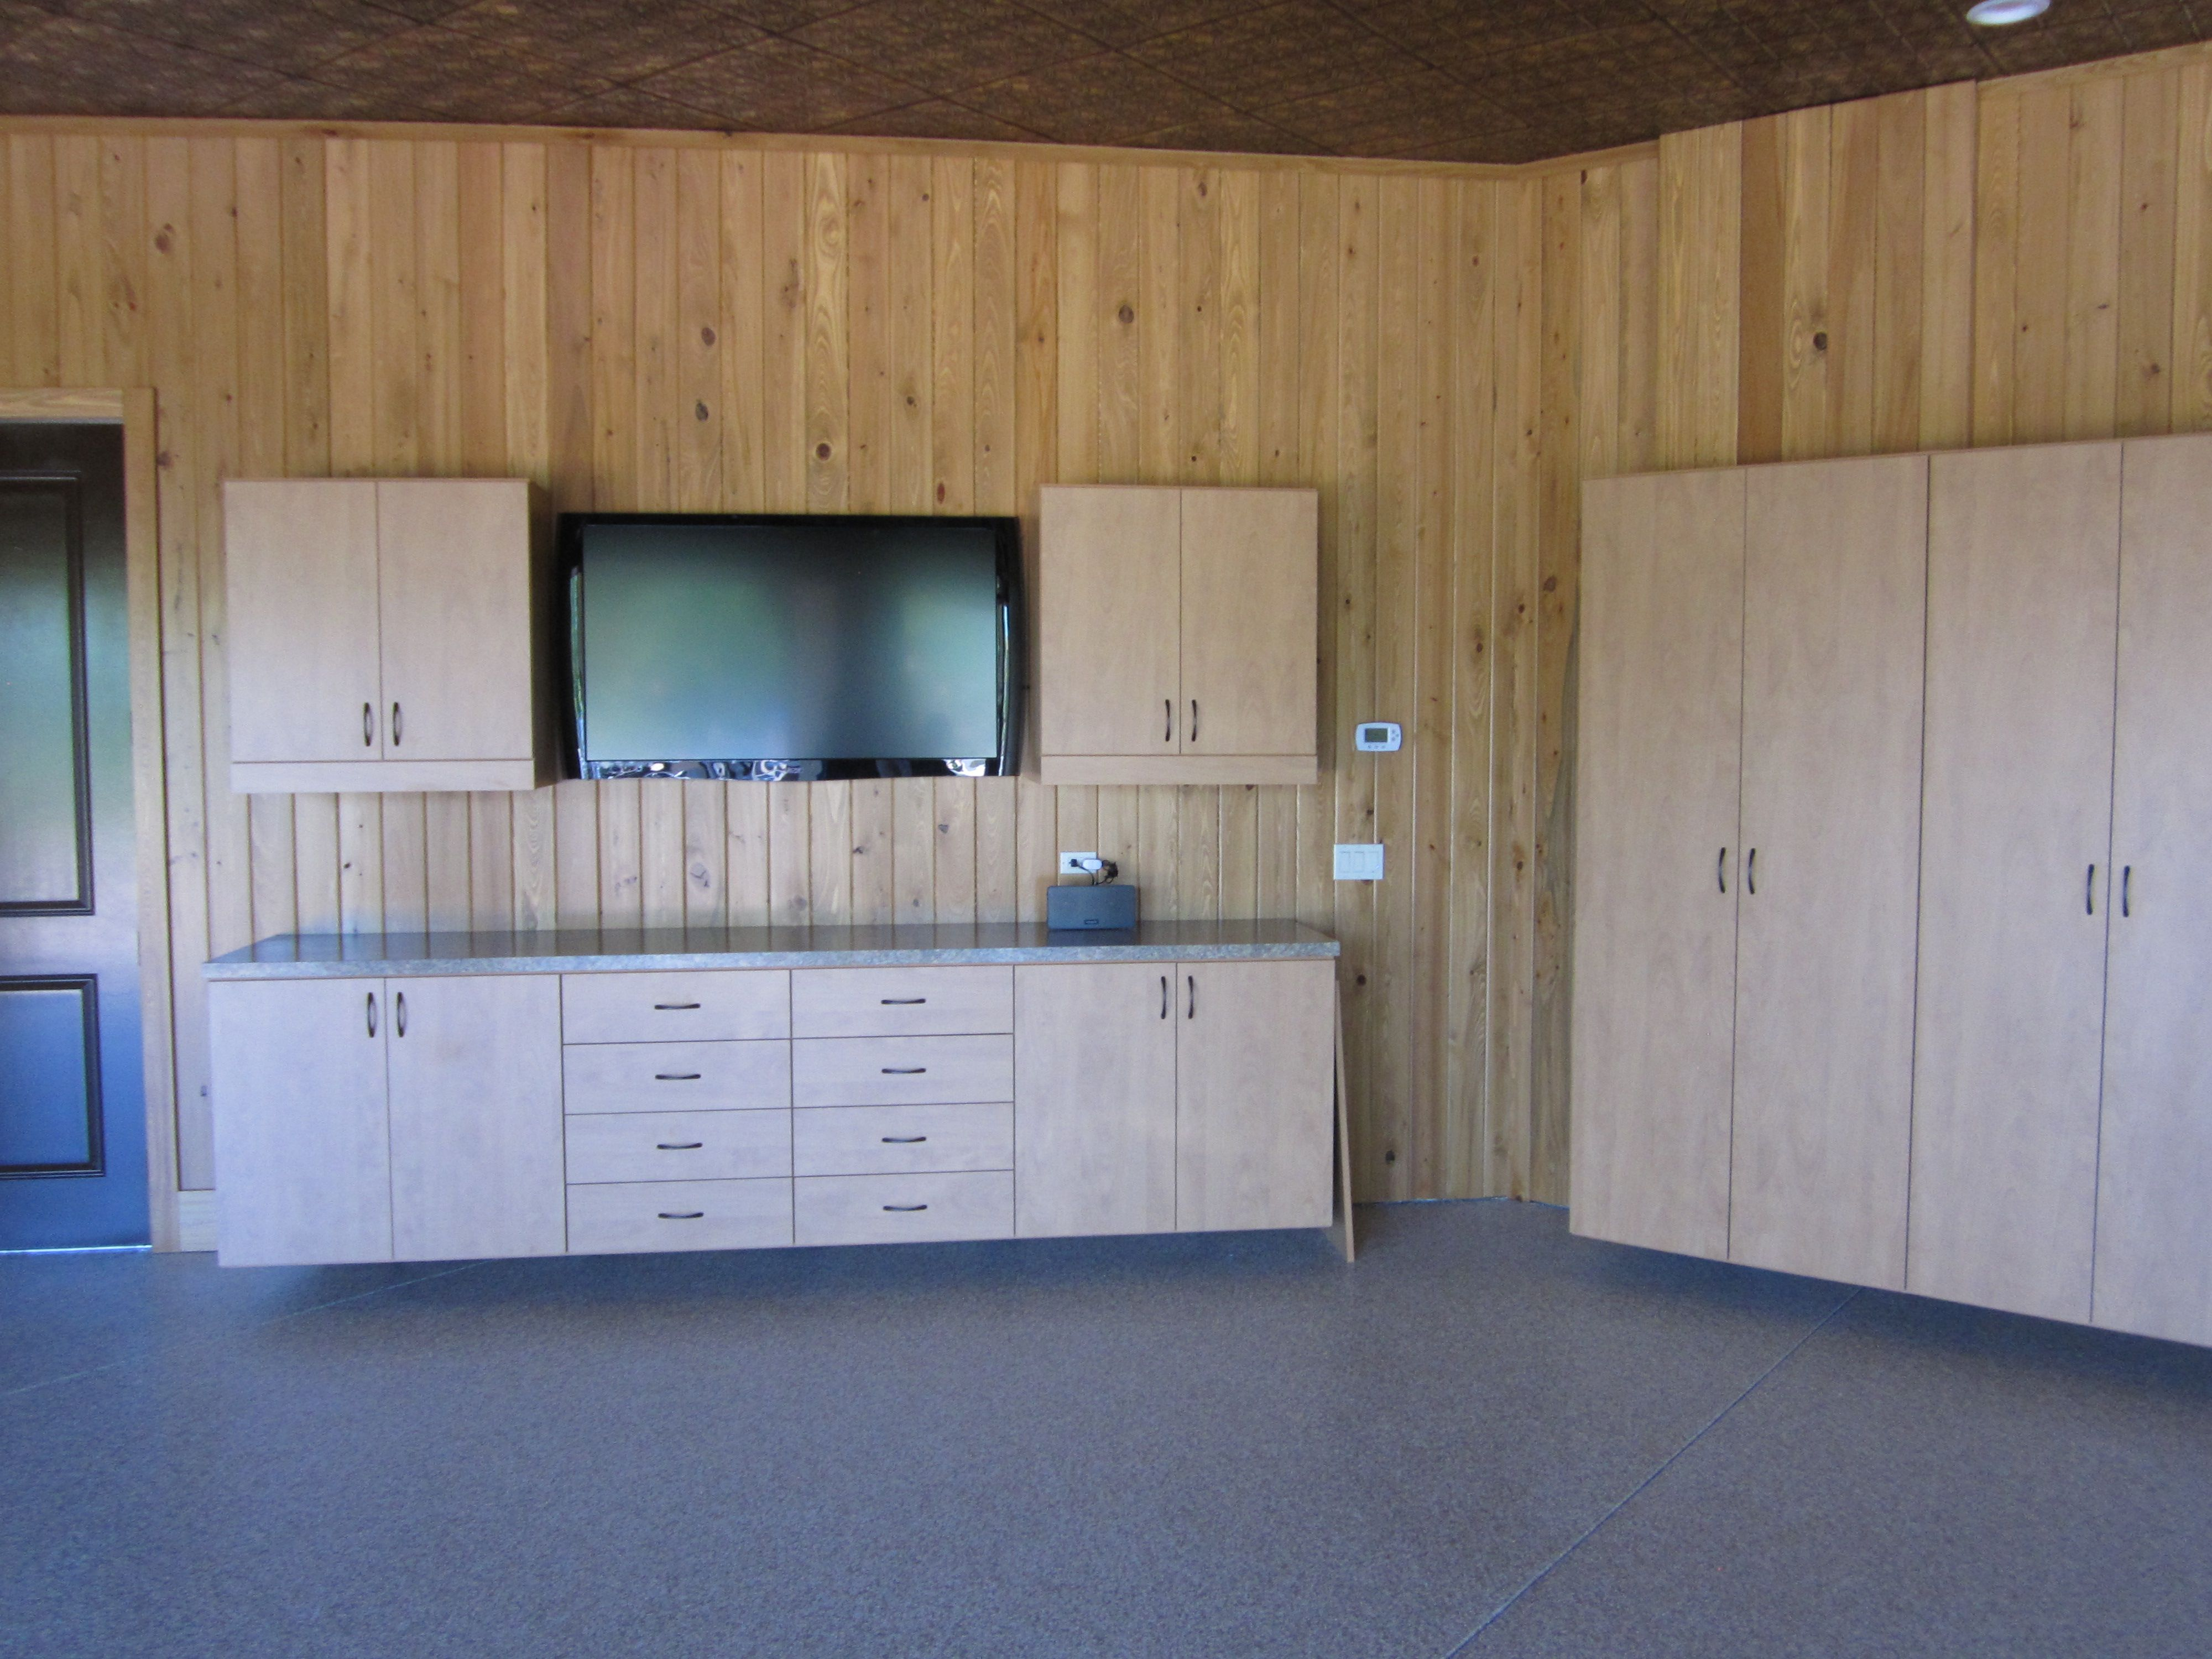 Charming Custom Garage Furniture Man Cave Workshop Cabinet Cabinetry Murphy Bed  Storage Space Saver More Space Place